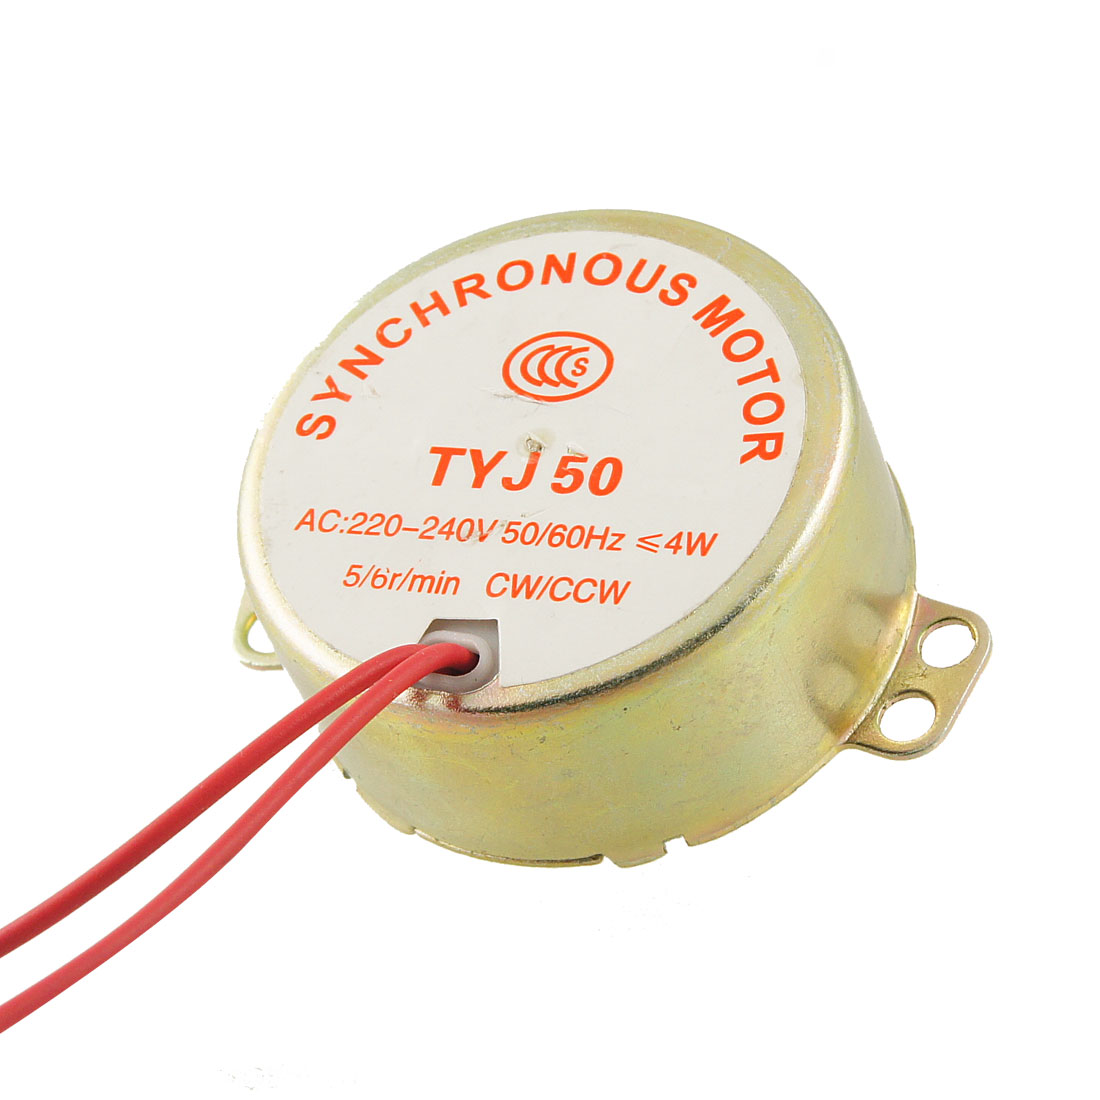 Microwave Oven Synchronous Motor 5/6RPM AC 220-240V 50/60Hz CW/CCW